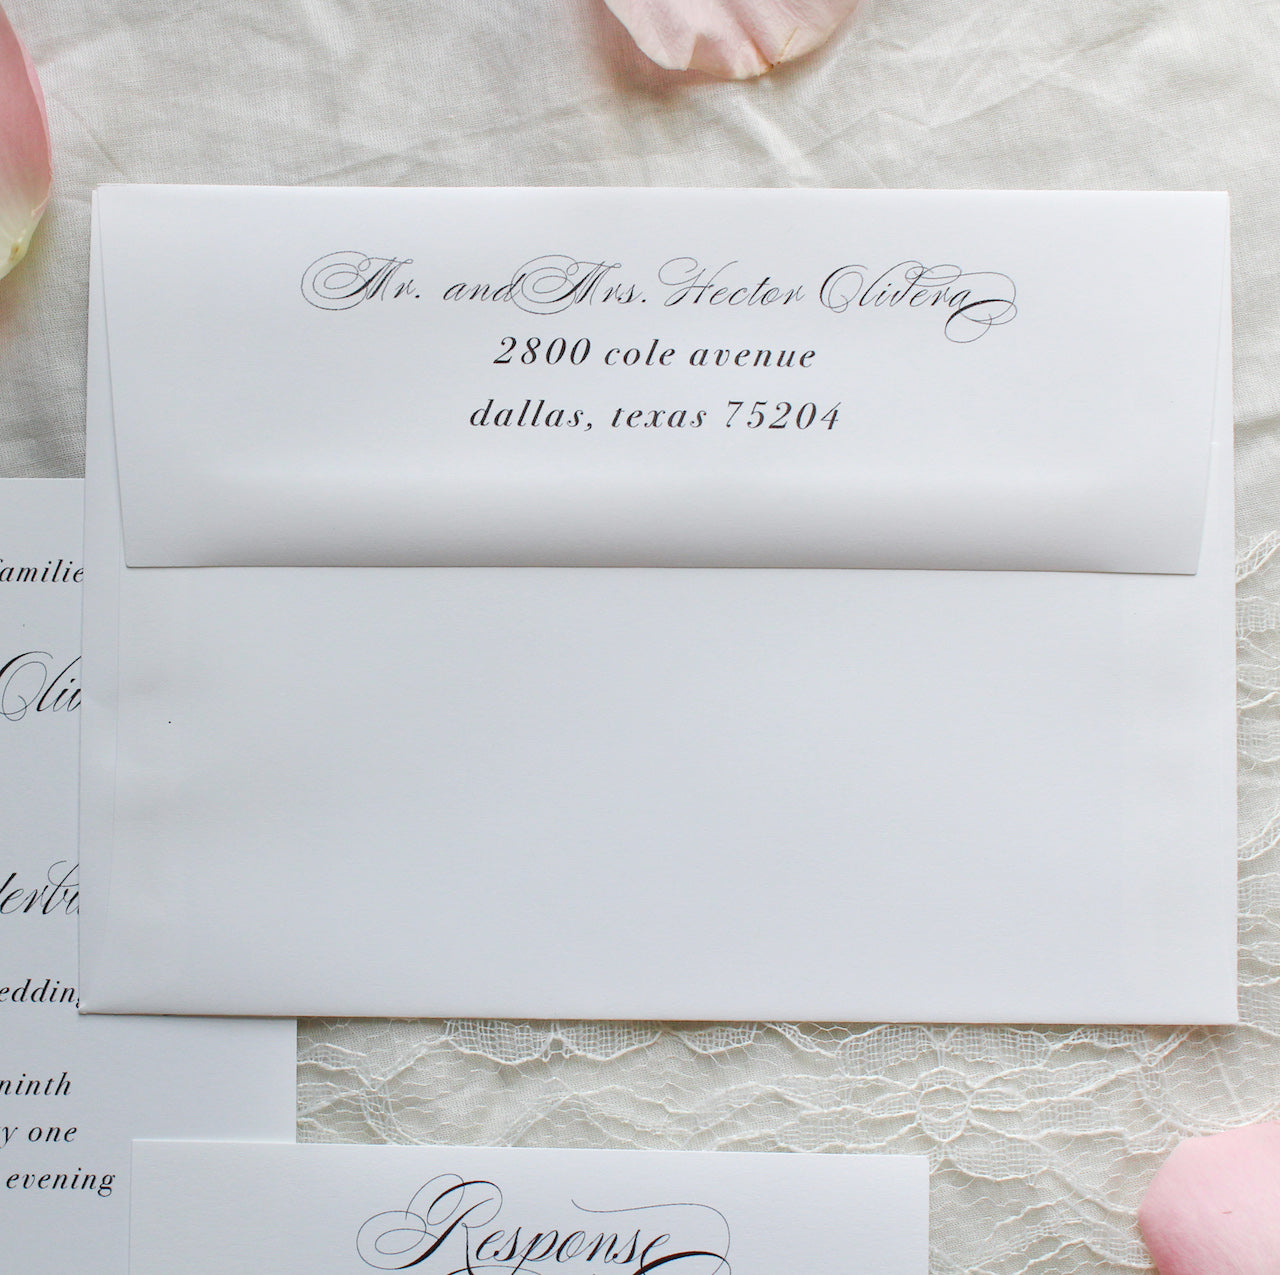 elegant wedding invitations and envelope with calligraphy script, sustainably printed on recycled paper